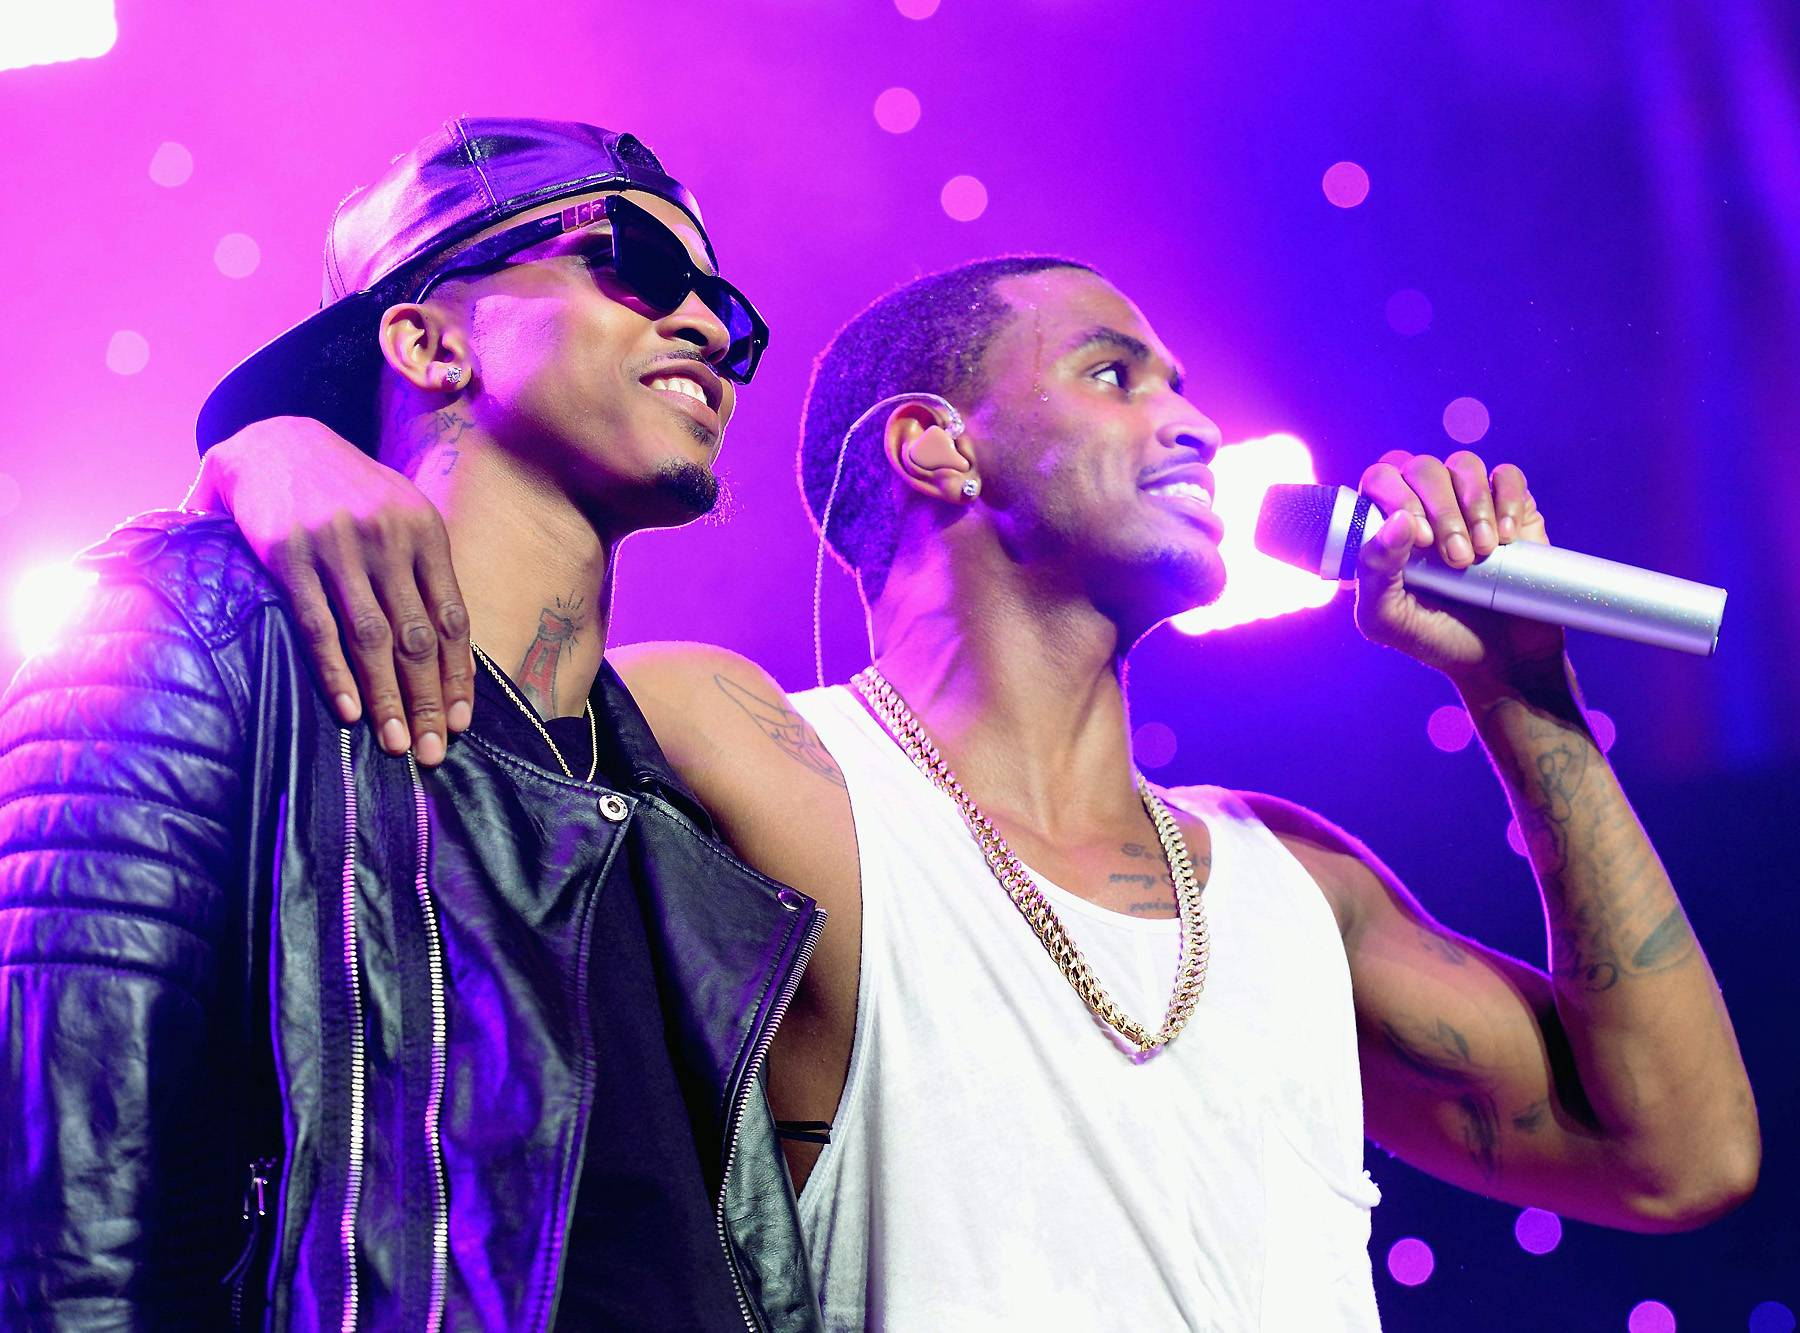 Brotherly Love - Trey Songz and August Alsina have had their differences in the past, but their brotherly bond is unbreakable.(Photo: Earl Gibson/BET/Getty Images for BET)